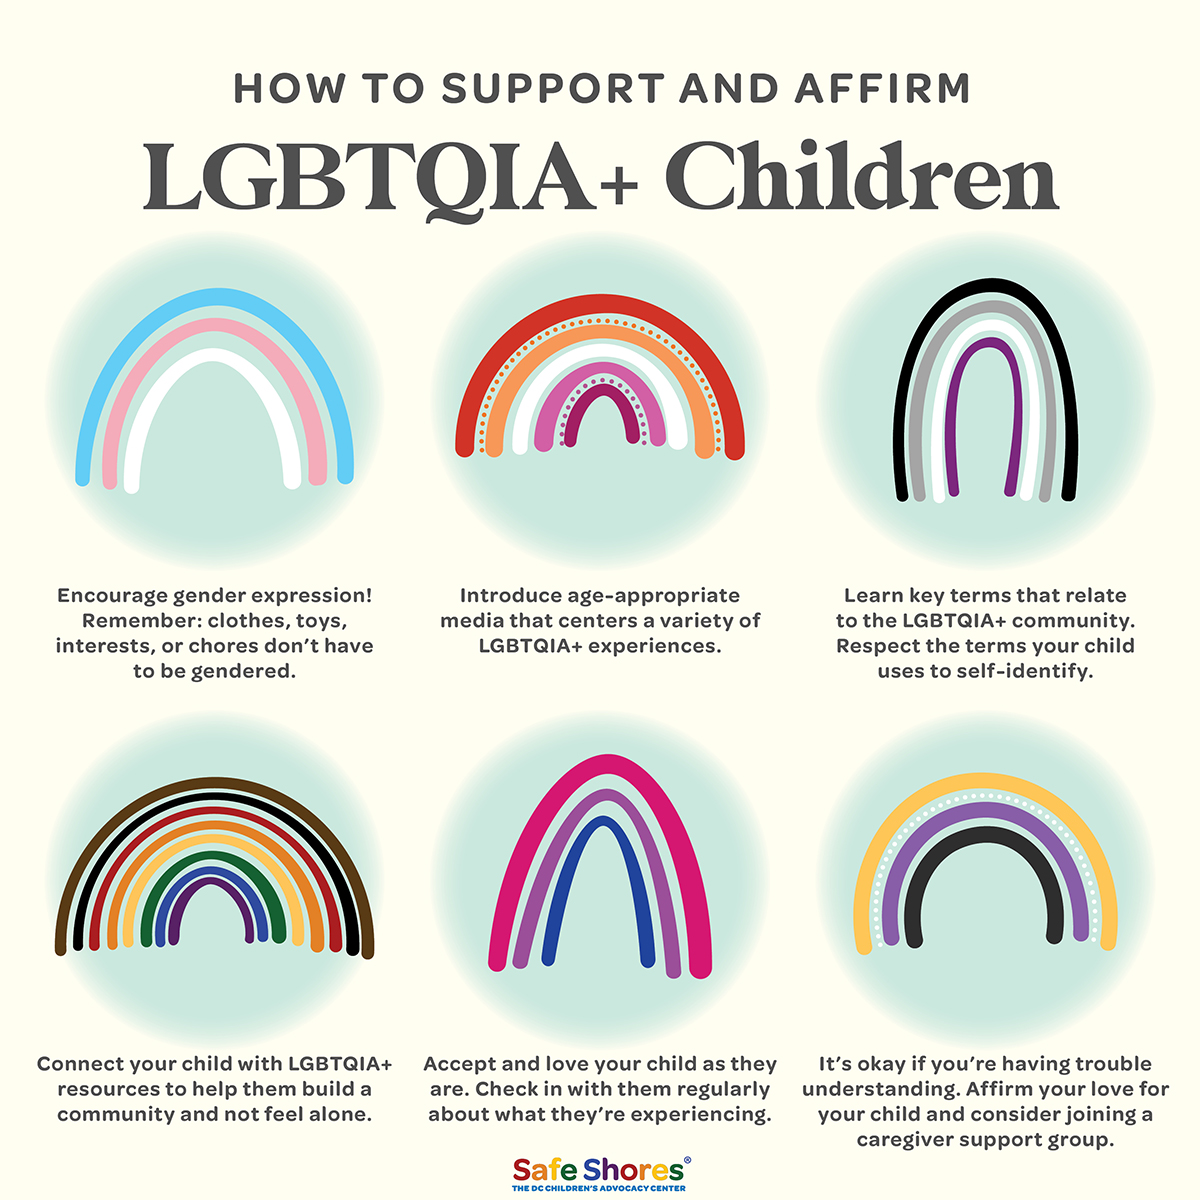 """The image reads """"How to Support and Affirm LGBTQIA+ Children"""" with six hand drawn rainbows. The first rainbow, with the Trans Pride flag colors, says """"Encourage gender Encourage gender expression! Remember: clothes, toys, interests, or chores don't have to be gendered. The second rainbow, with the Lesbian Pride flag colors, says """"Introduce age-appropriate media that centers a variety of LGBTQIA+ experiences."""" The third rainbow, with the Asexual Pride flag colors, says """"Learn key terms that relate to the LGBTQIA+ community. Respect the terms your child uses to self-identify."""" The fourth rainbow, with the Philadelphia Progress Pride flag colors (representing queer people of color), says Connect your child with LGBTQIA+ resources to help them build a community and not feel alone."""" The fifth rainbow with the Bisexual pride flag colors says """"Accept and love your child as they are. Check in with them regularly about what they're experiencing."""" The sixth rainbow with the Nonbinary flag colors says """"It's okay if you're having trouble understanding. Affirm your love for your child and consider joining a caregiver support group."""""""